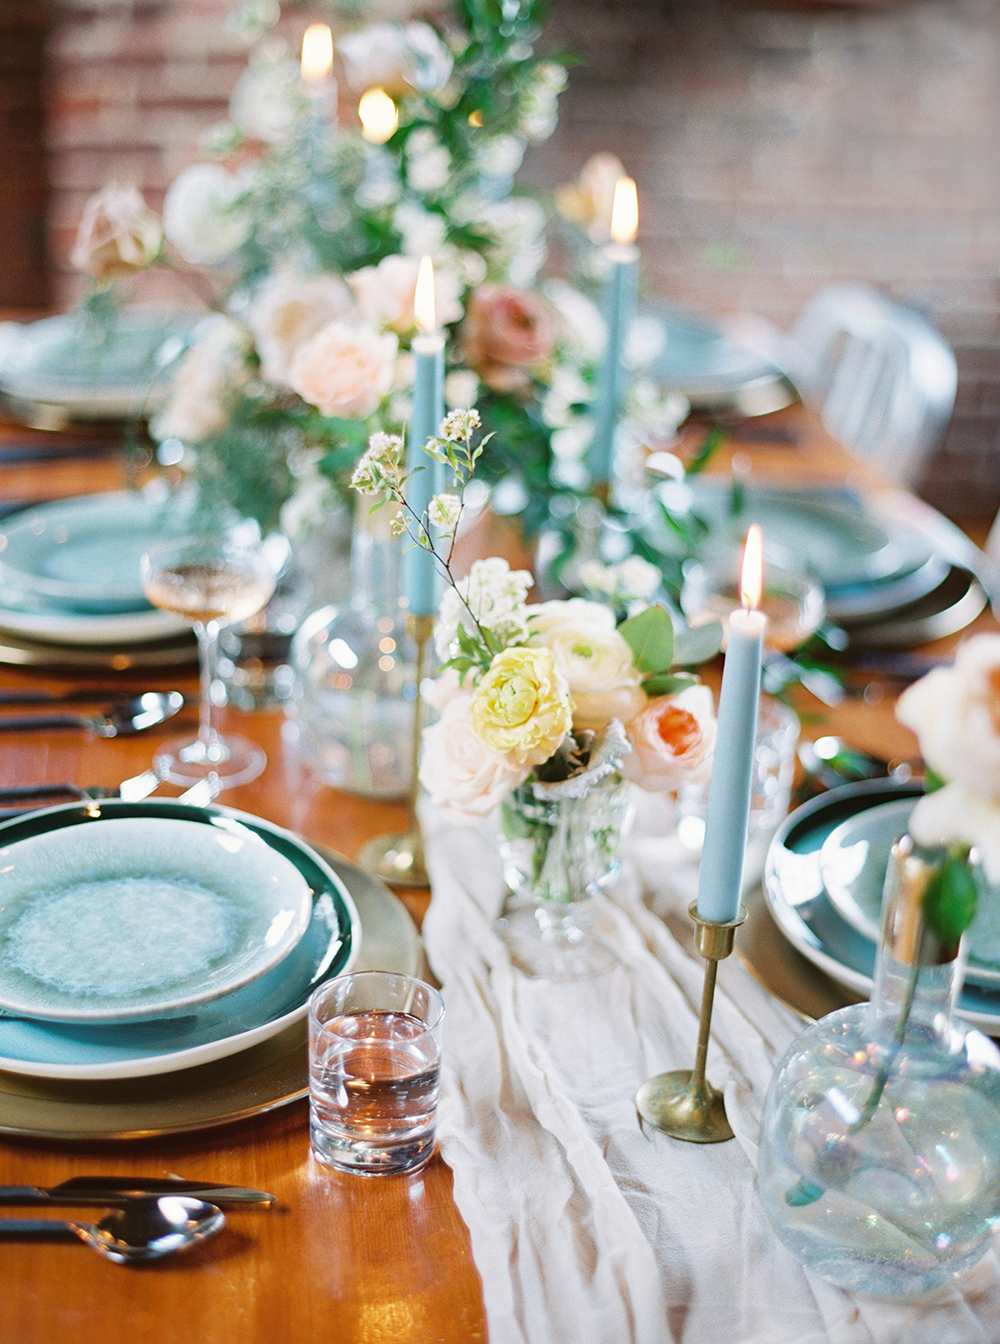 wedding tablescapes - photo by Photos by Heart http://ruffledblog.com/downtown-birmingham-spring-wedding-inspiration